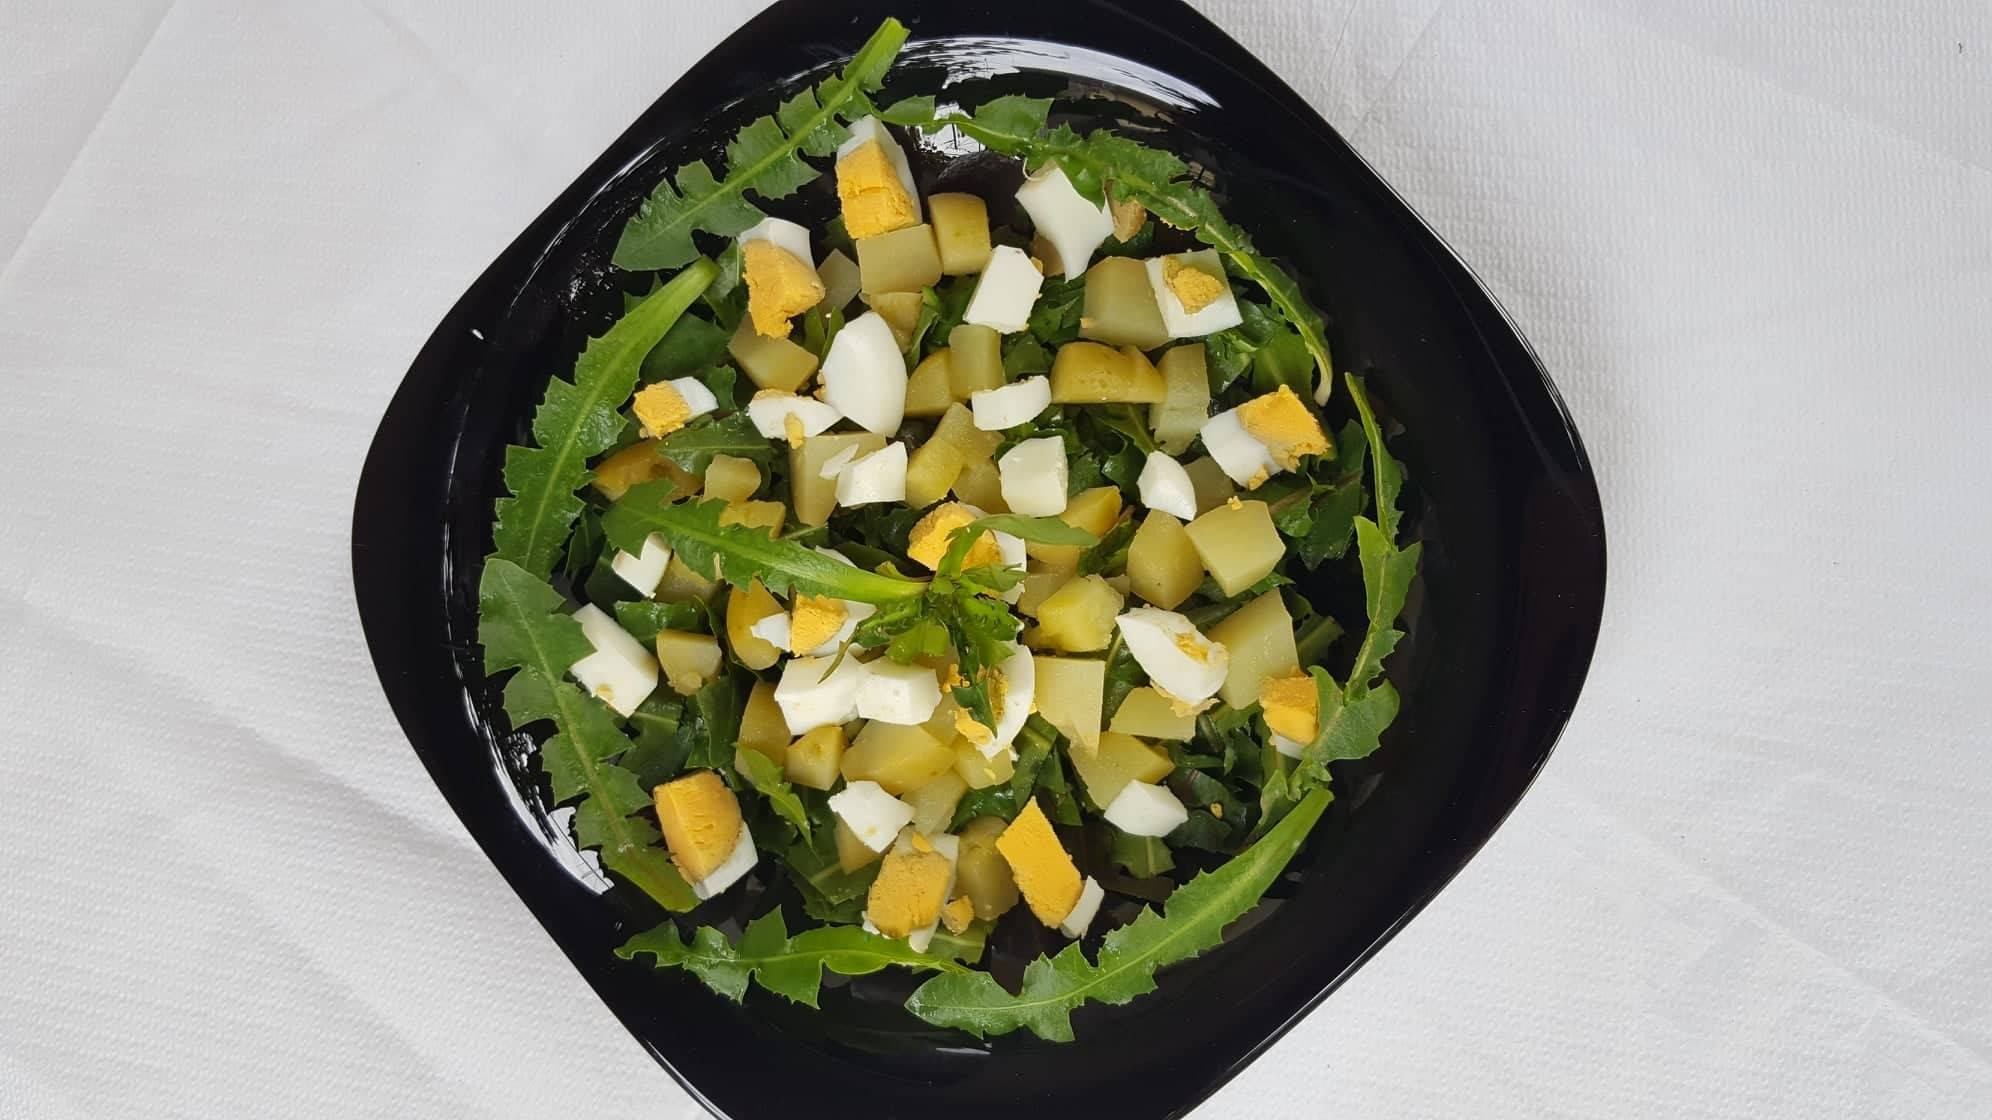 Dandelion Greens Salad with Potatoes and Eggs